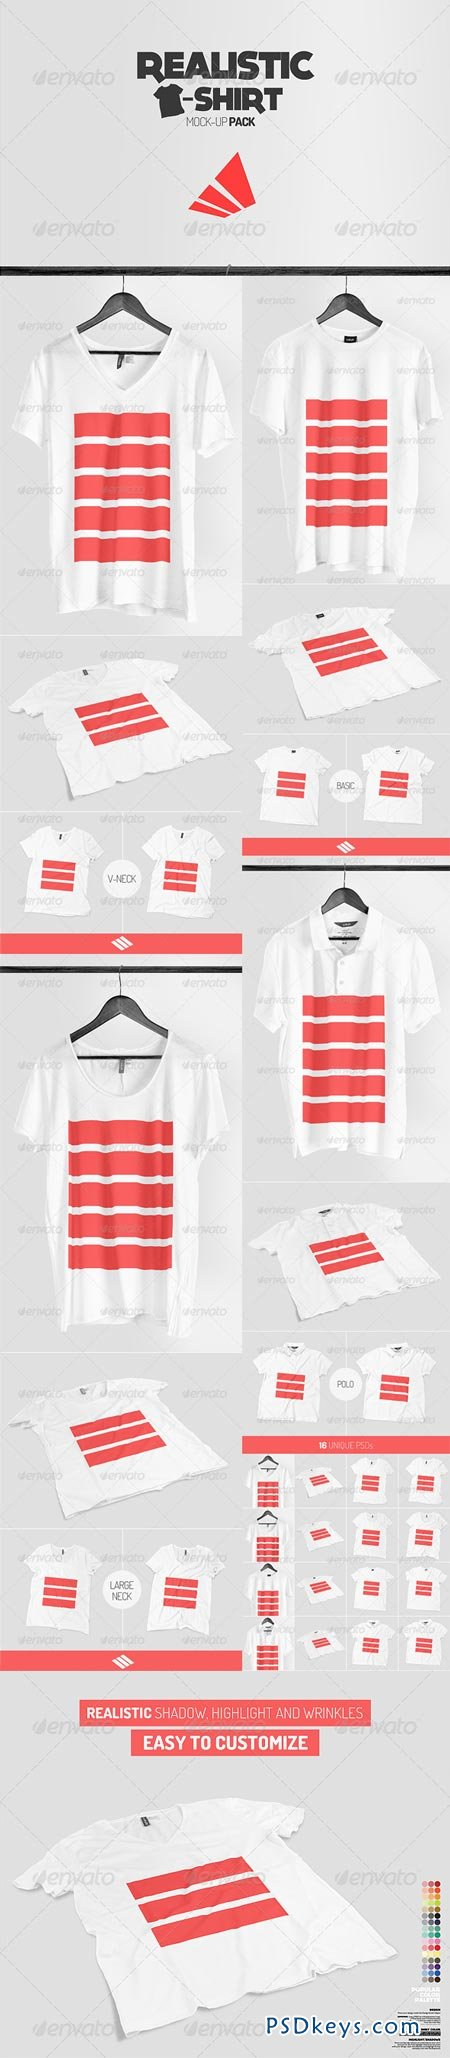 Realistic T-shirt Mock-up Pack 7325557